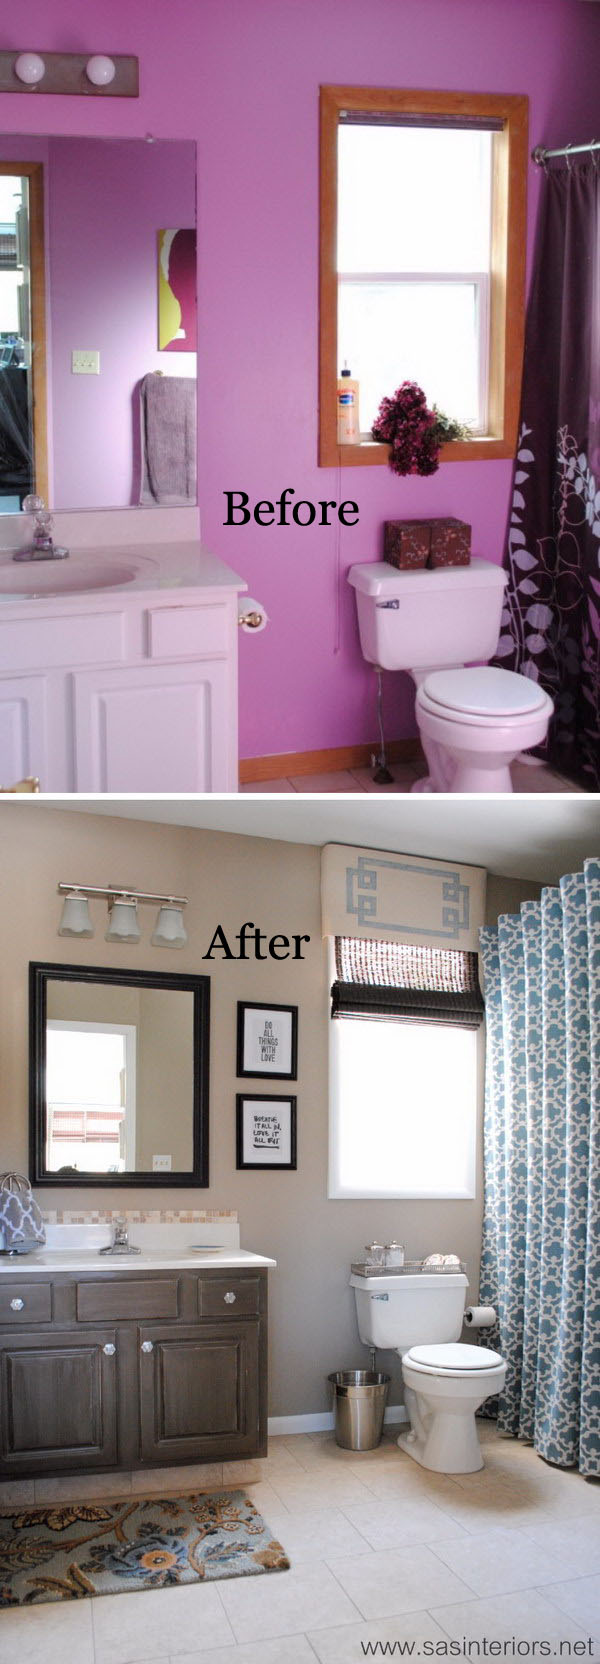 From Horrid Purple To Heavenly Gray And Beige Master Bathroom Makeover